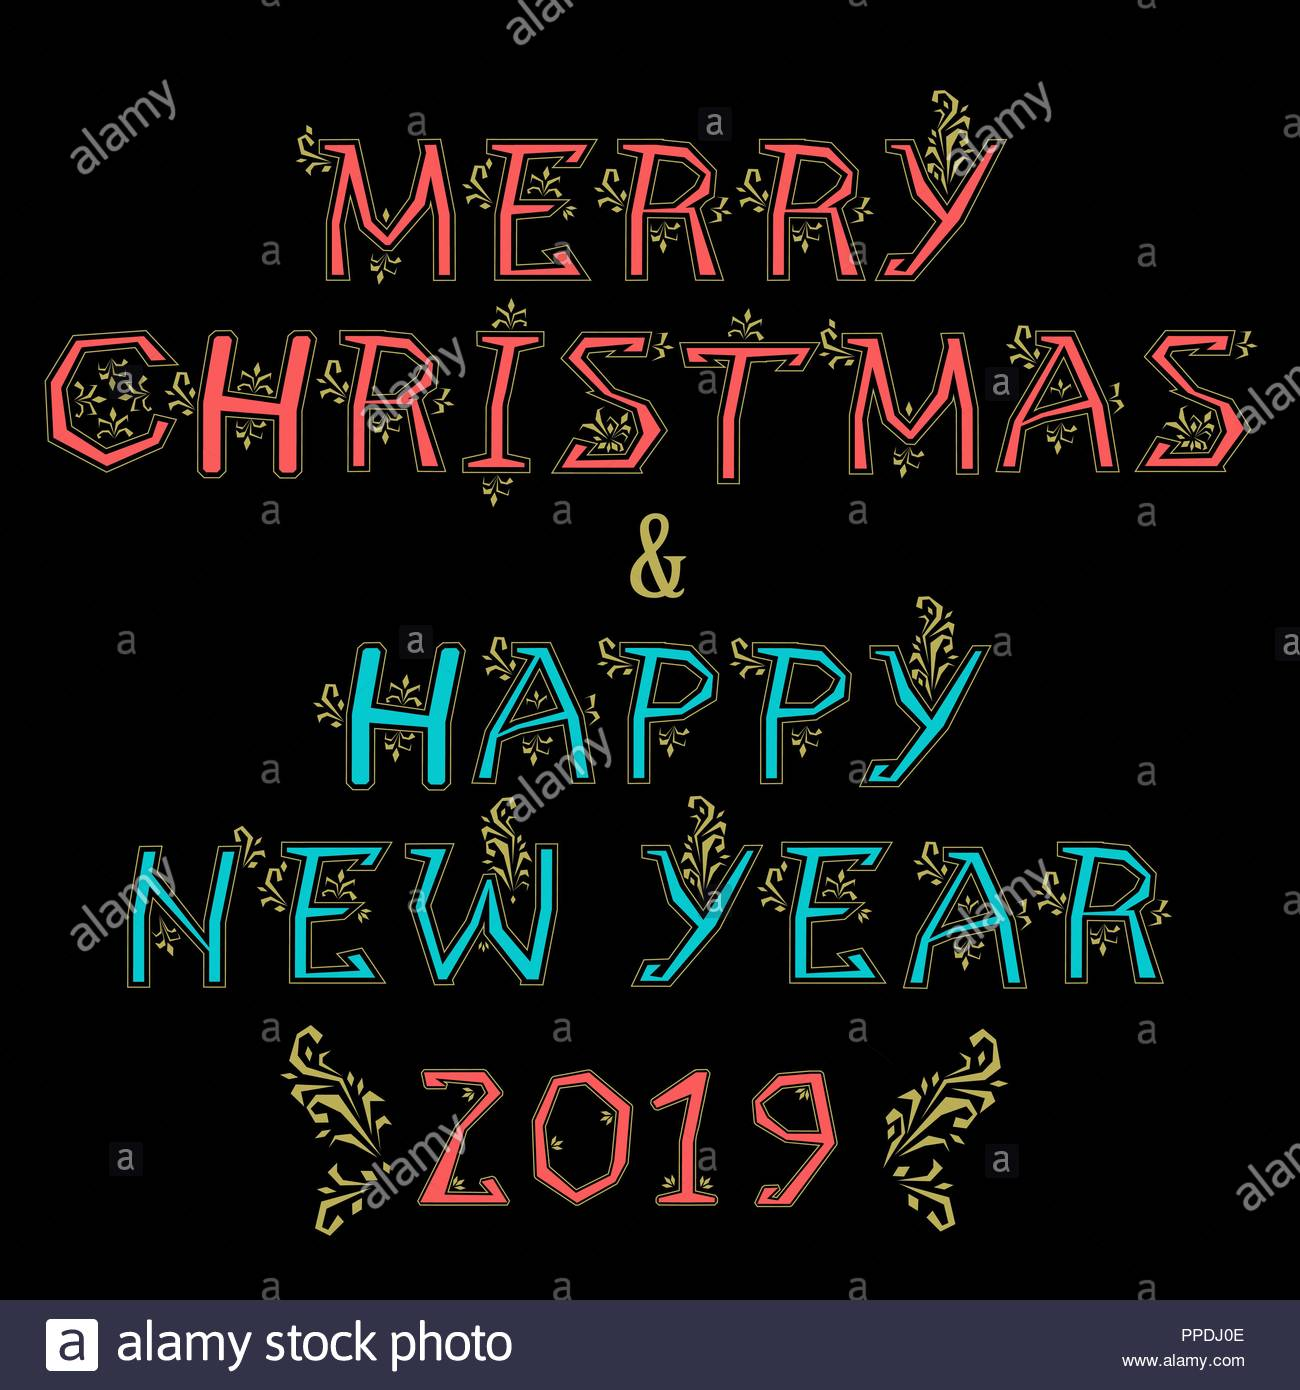 merry christmas and happy new year 2019 artistic blue and red alphabet with yellow folk botanical decor black background vector illustration